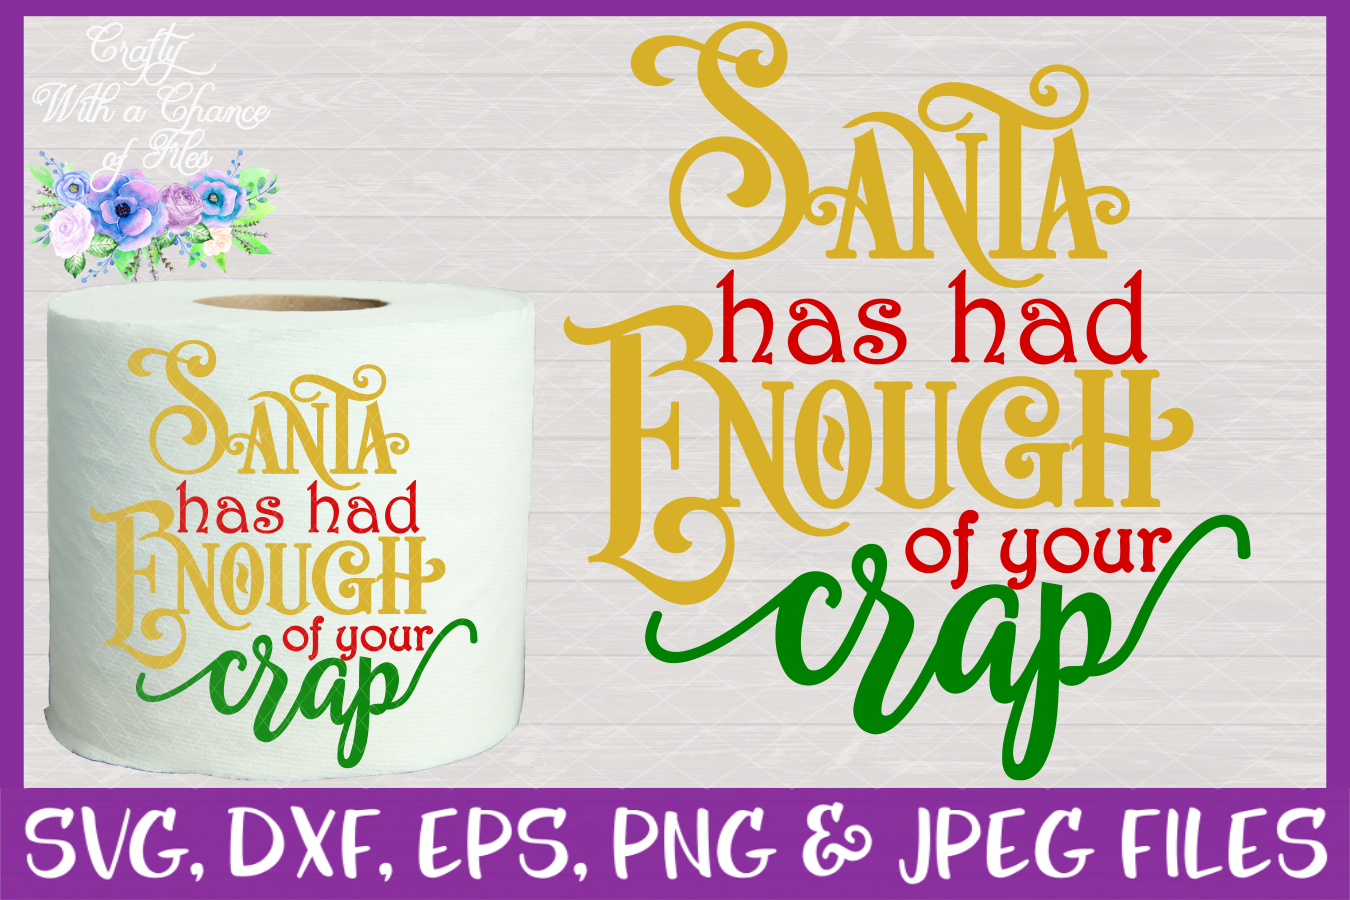 Santa Has Had Enough of Your Crap SVG Christmas Toilet Paper example image 1